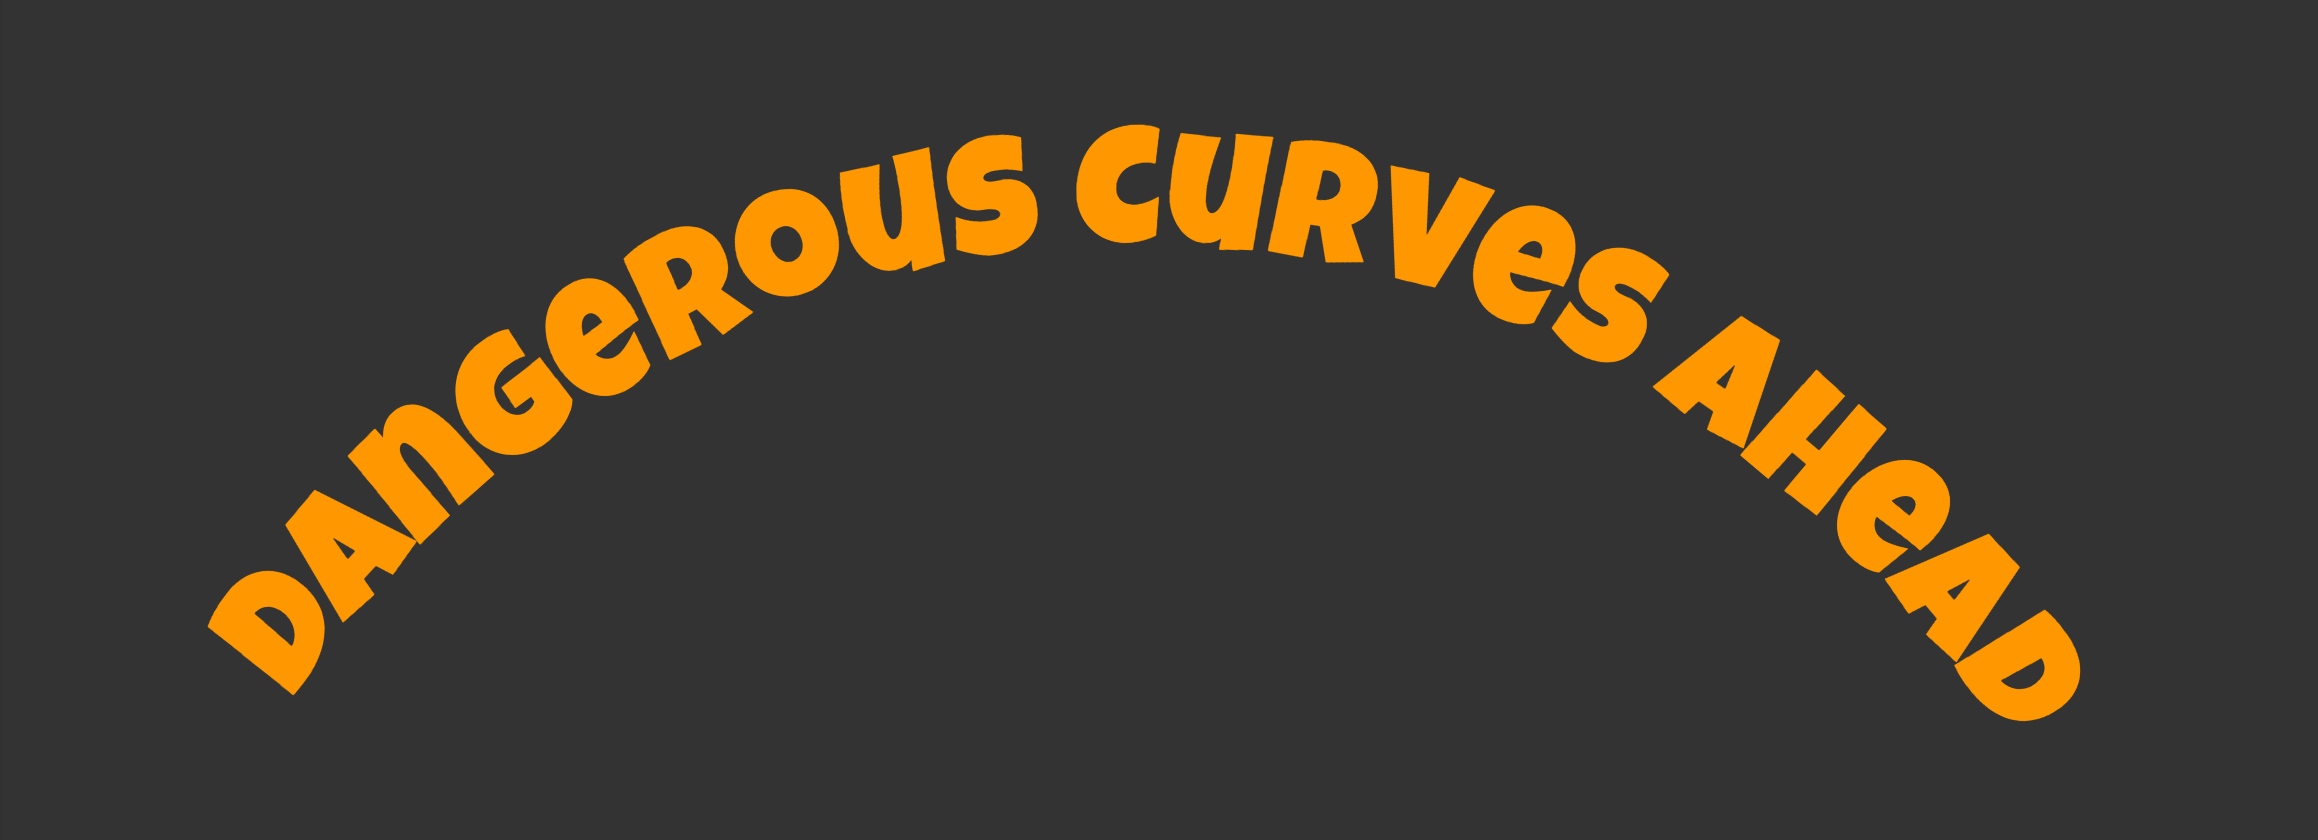 Curved Text Along a Path | CSS-Tricks